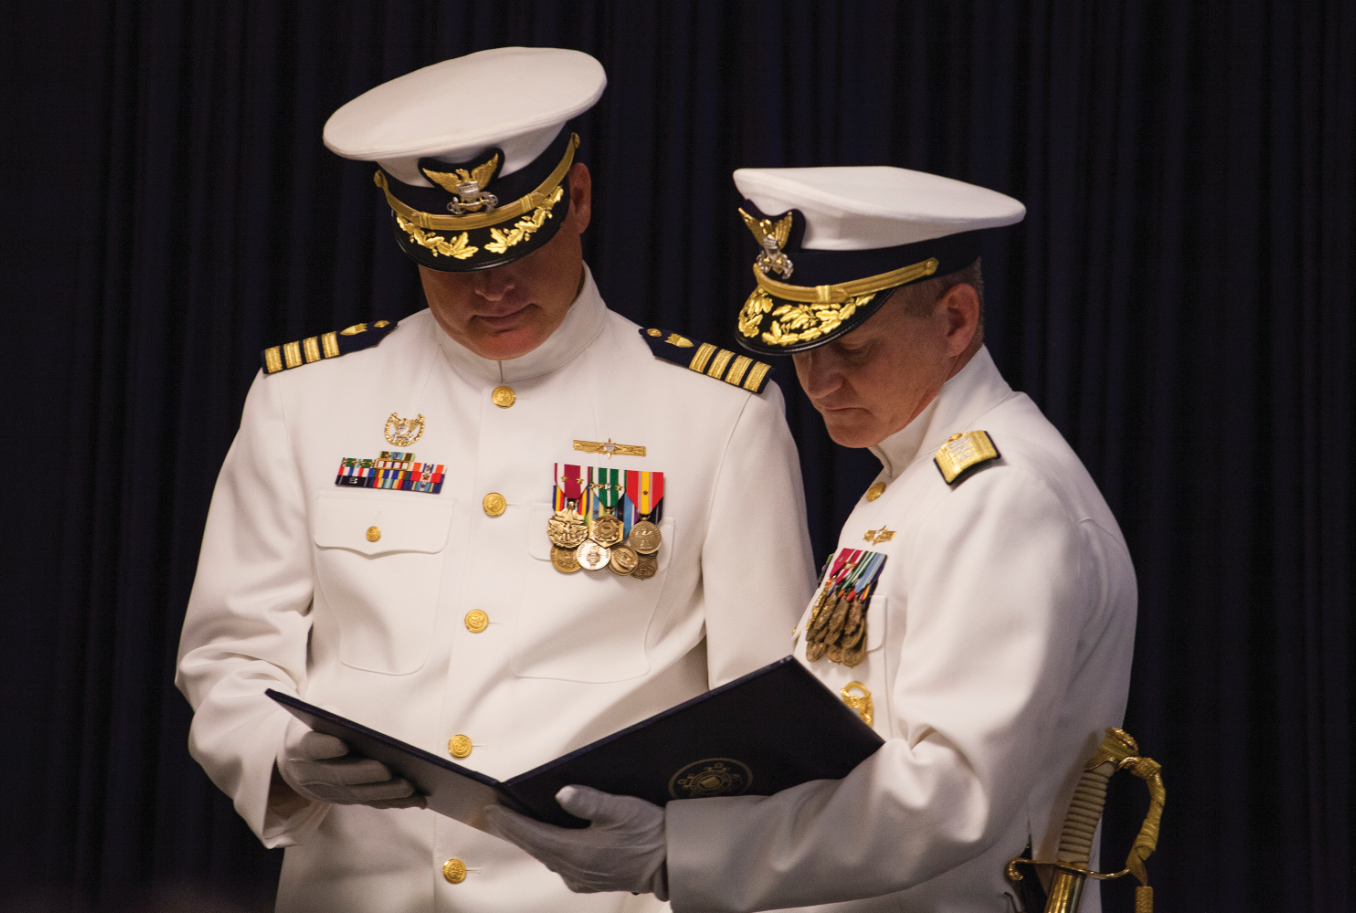 Rear Adm. Paul Thomas (right), commander of the U.S. Coast Guard's Eighth District, presents a meritorious service medal to Capt. Wayne Arguin, Sector New Orleans' outgoing commander, for his leadership at the sector, which included the 2016 response to historic rains that flooded much of the Baton Rouge and Denham Springs areas.